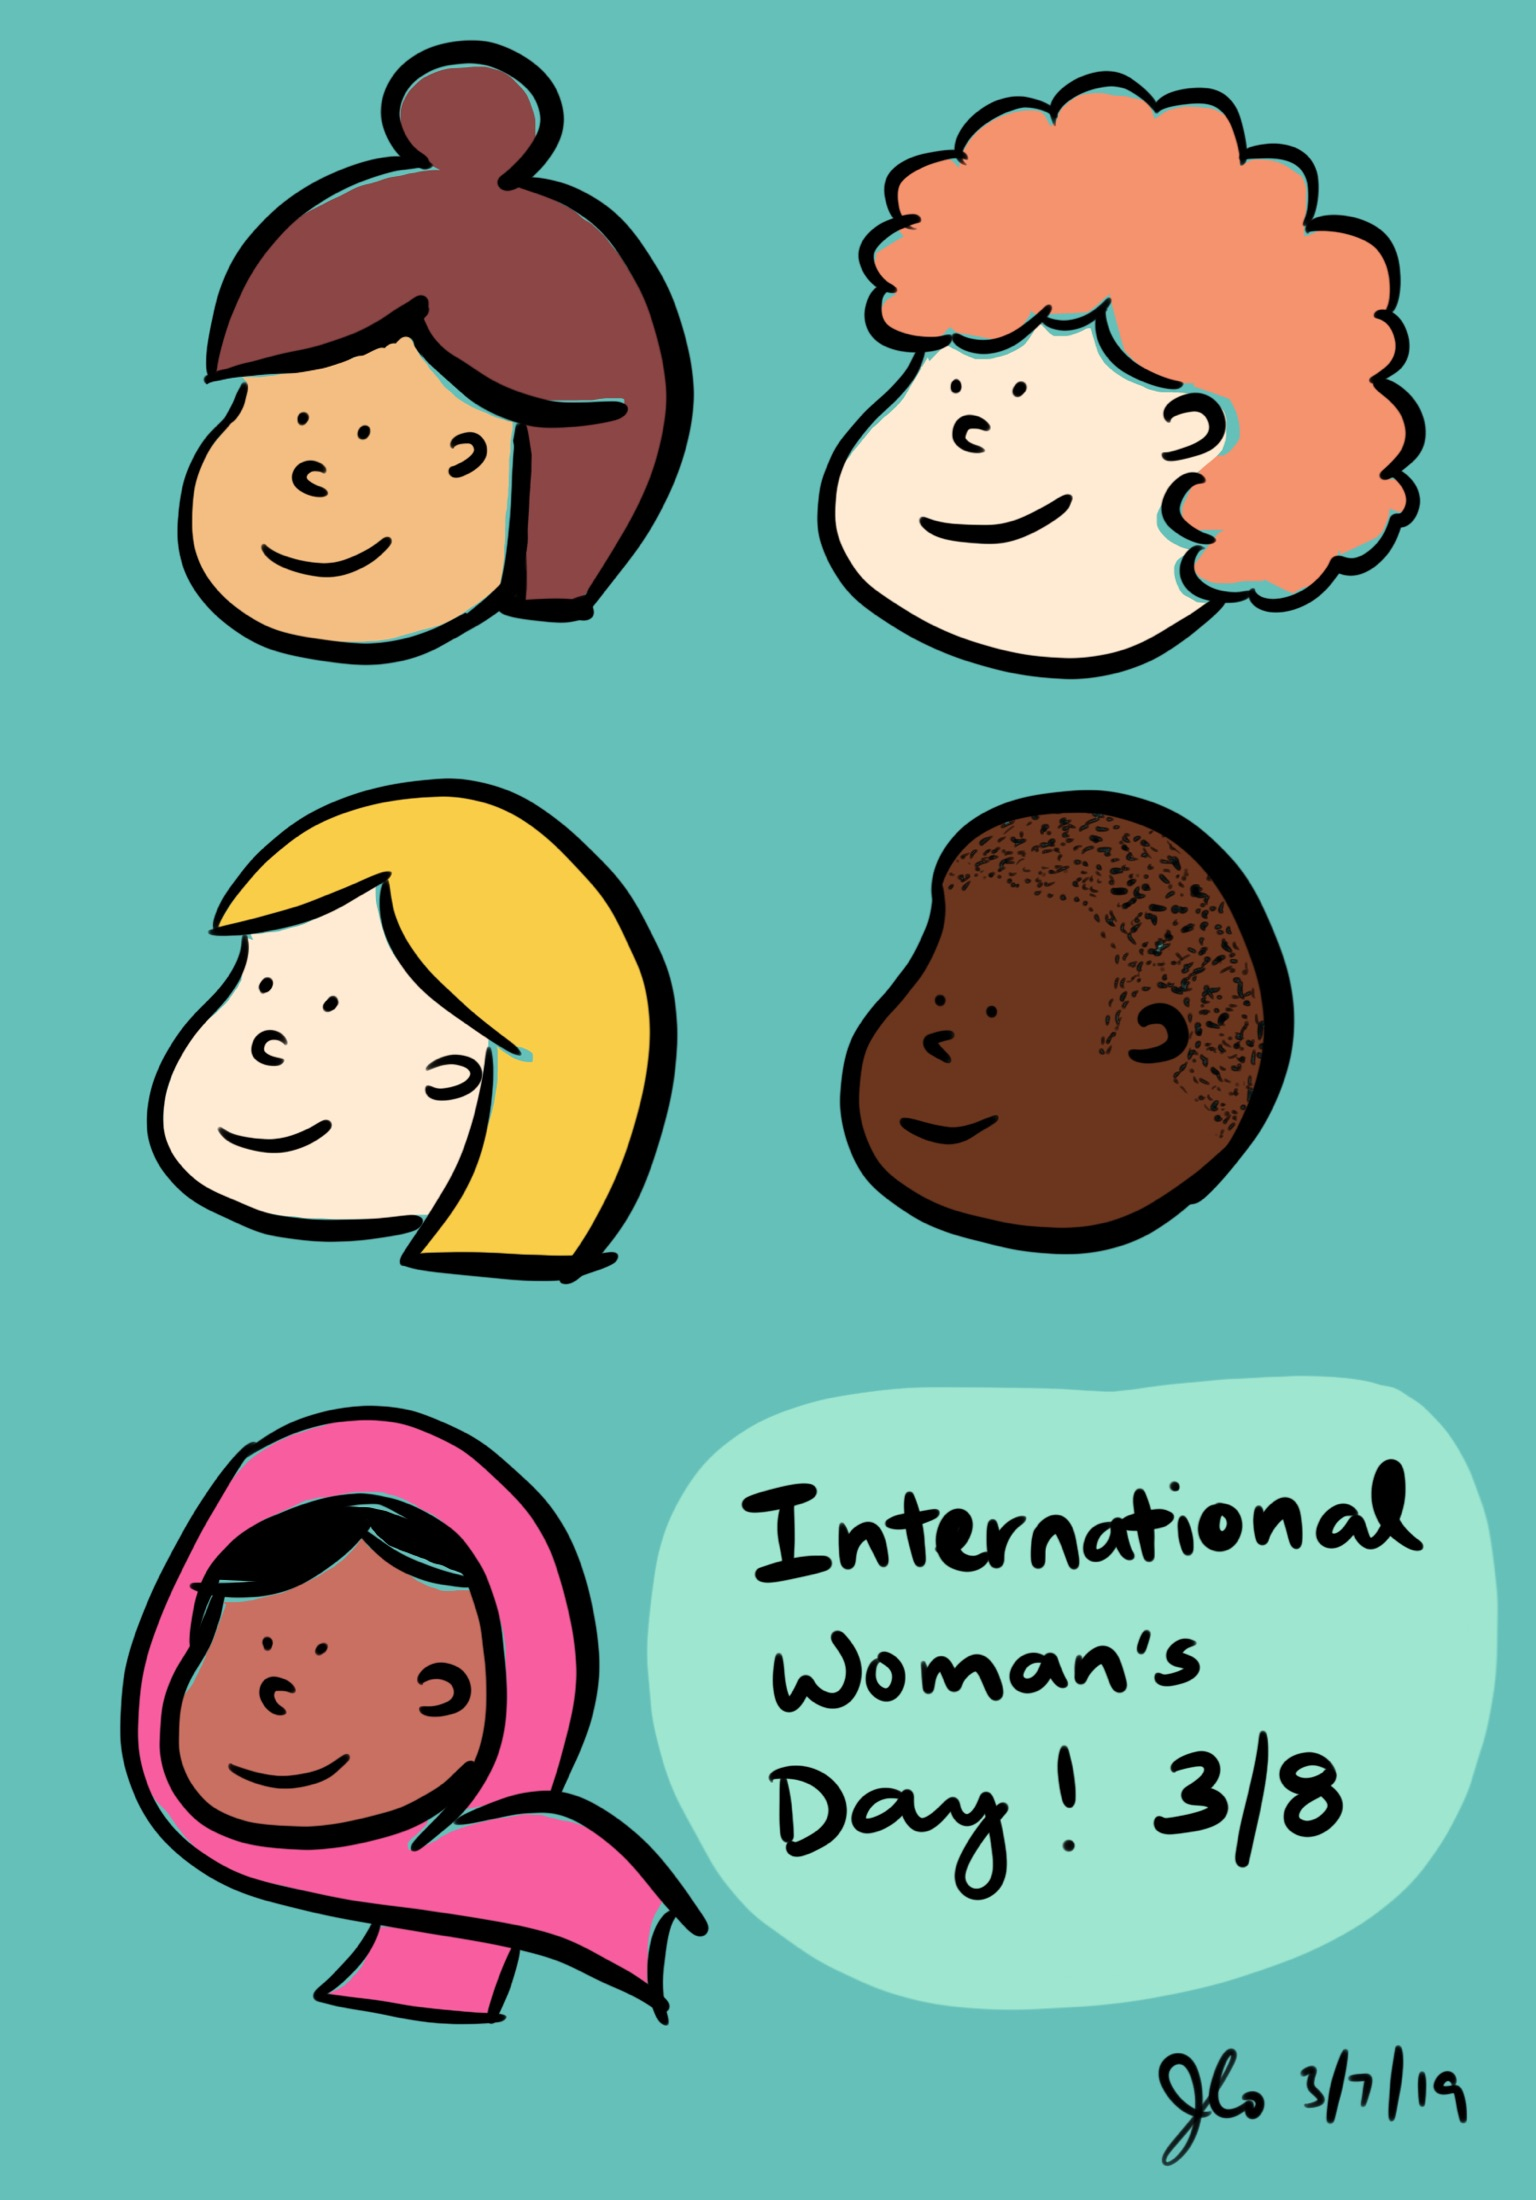 internationalwomensday_030719_greenbg.jpg